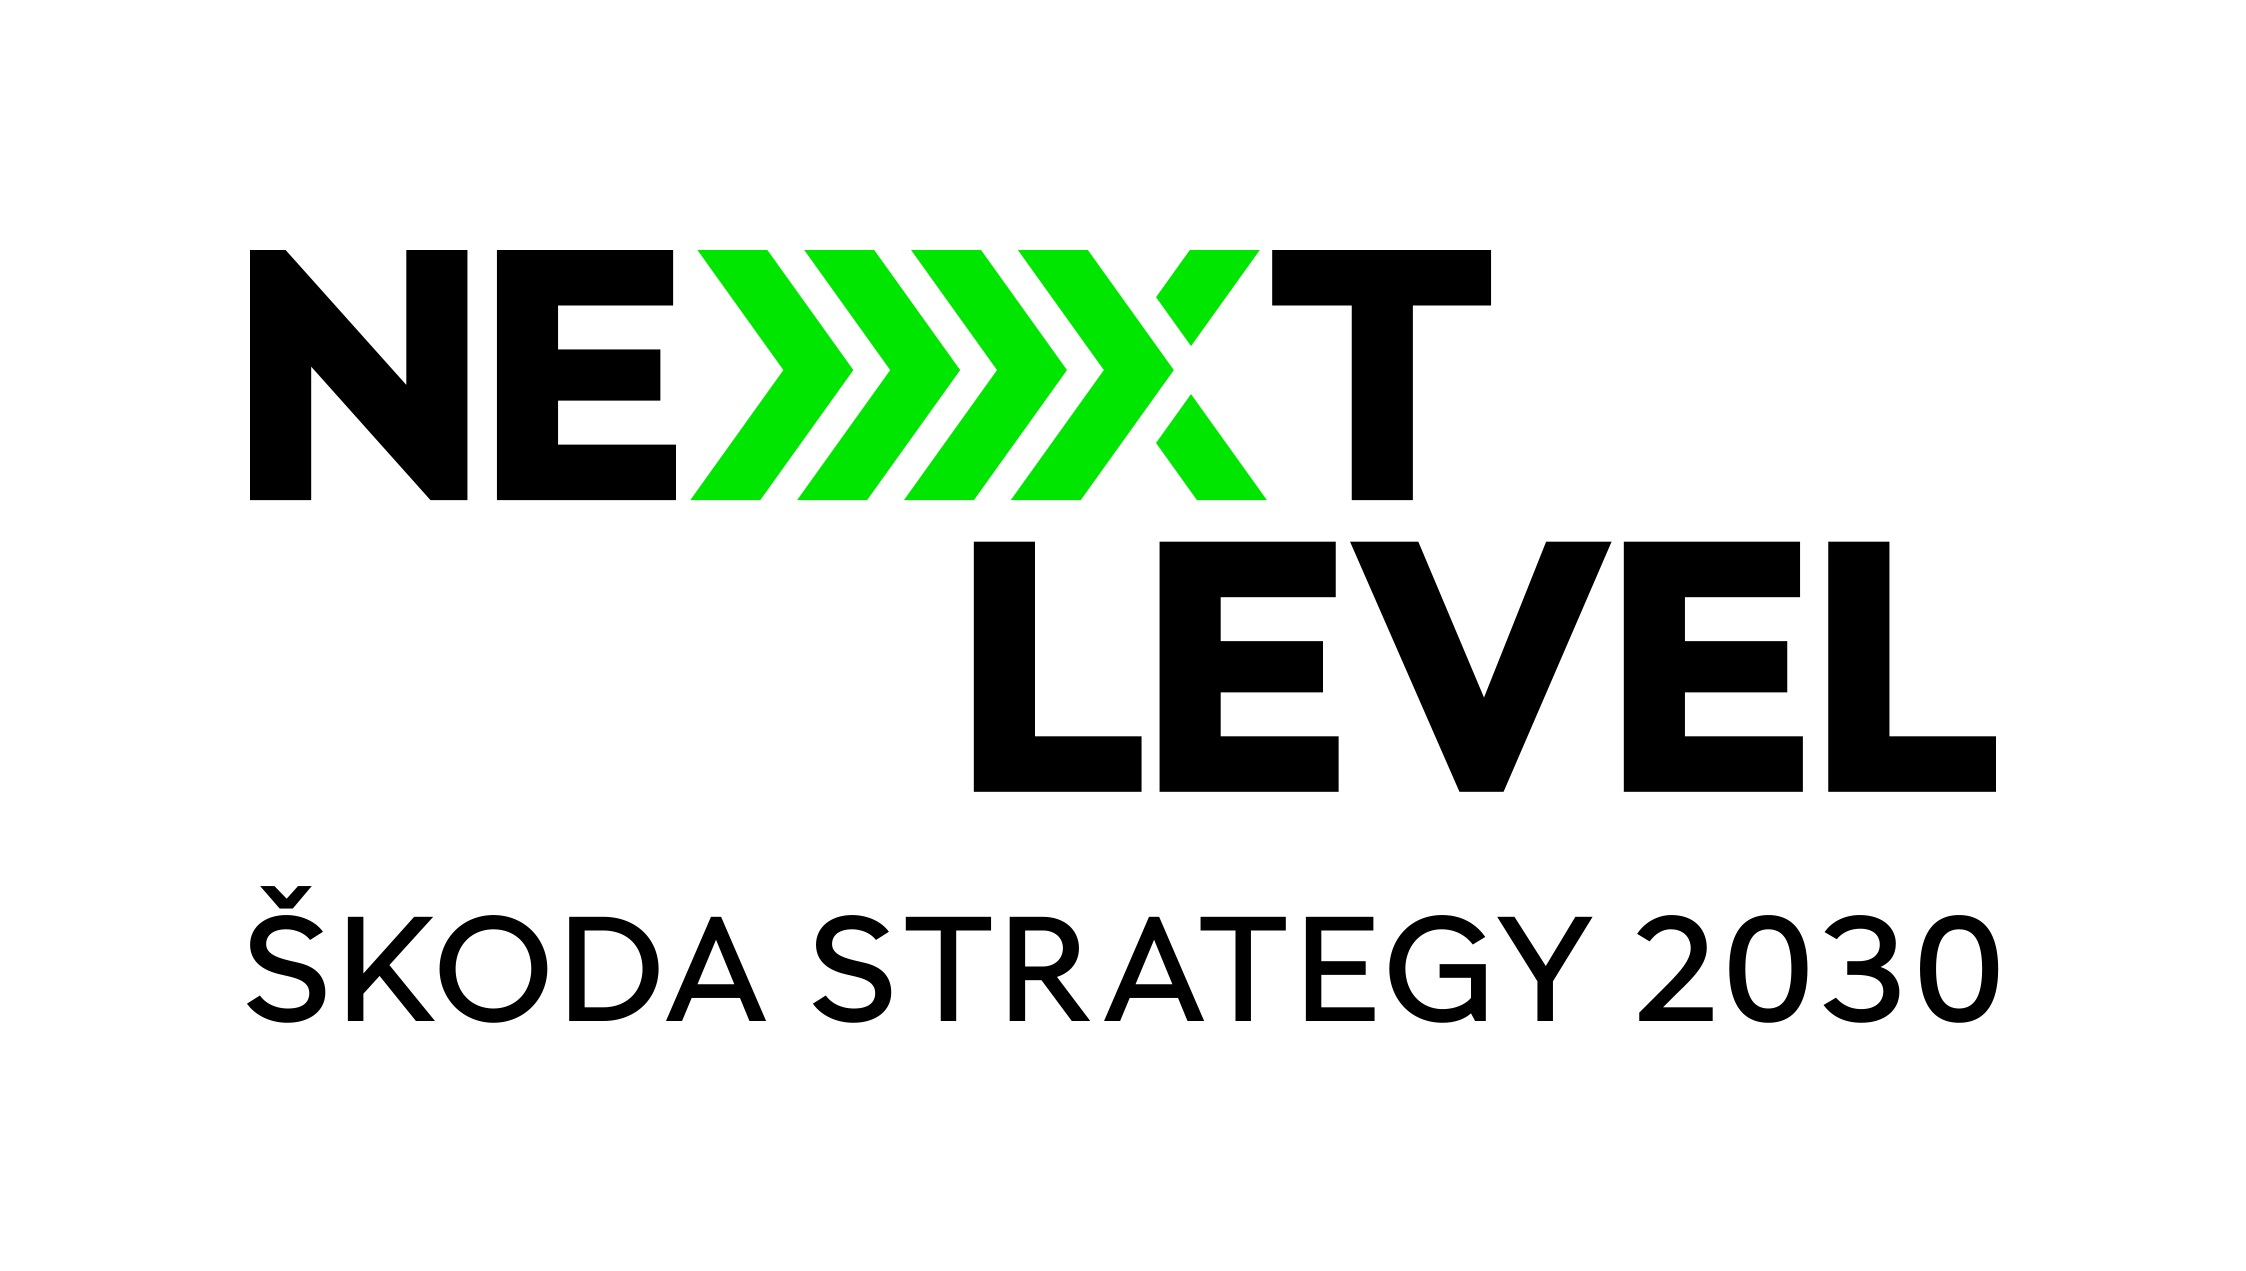 NEXT LEVEL – SKODA STRATEGY 2030: Press conference on the new corporate strategy takes place on 24 June - Image 1